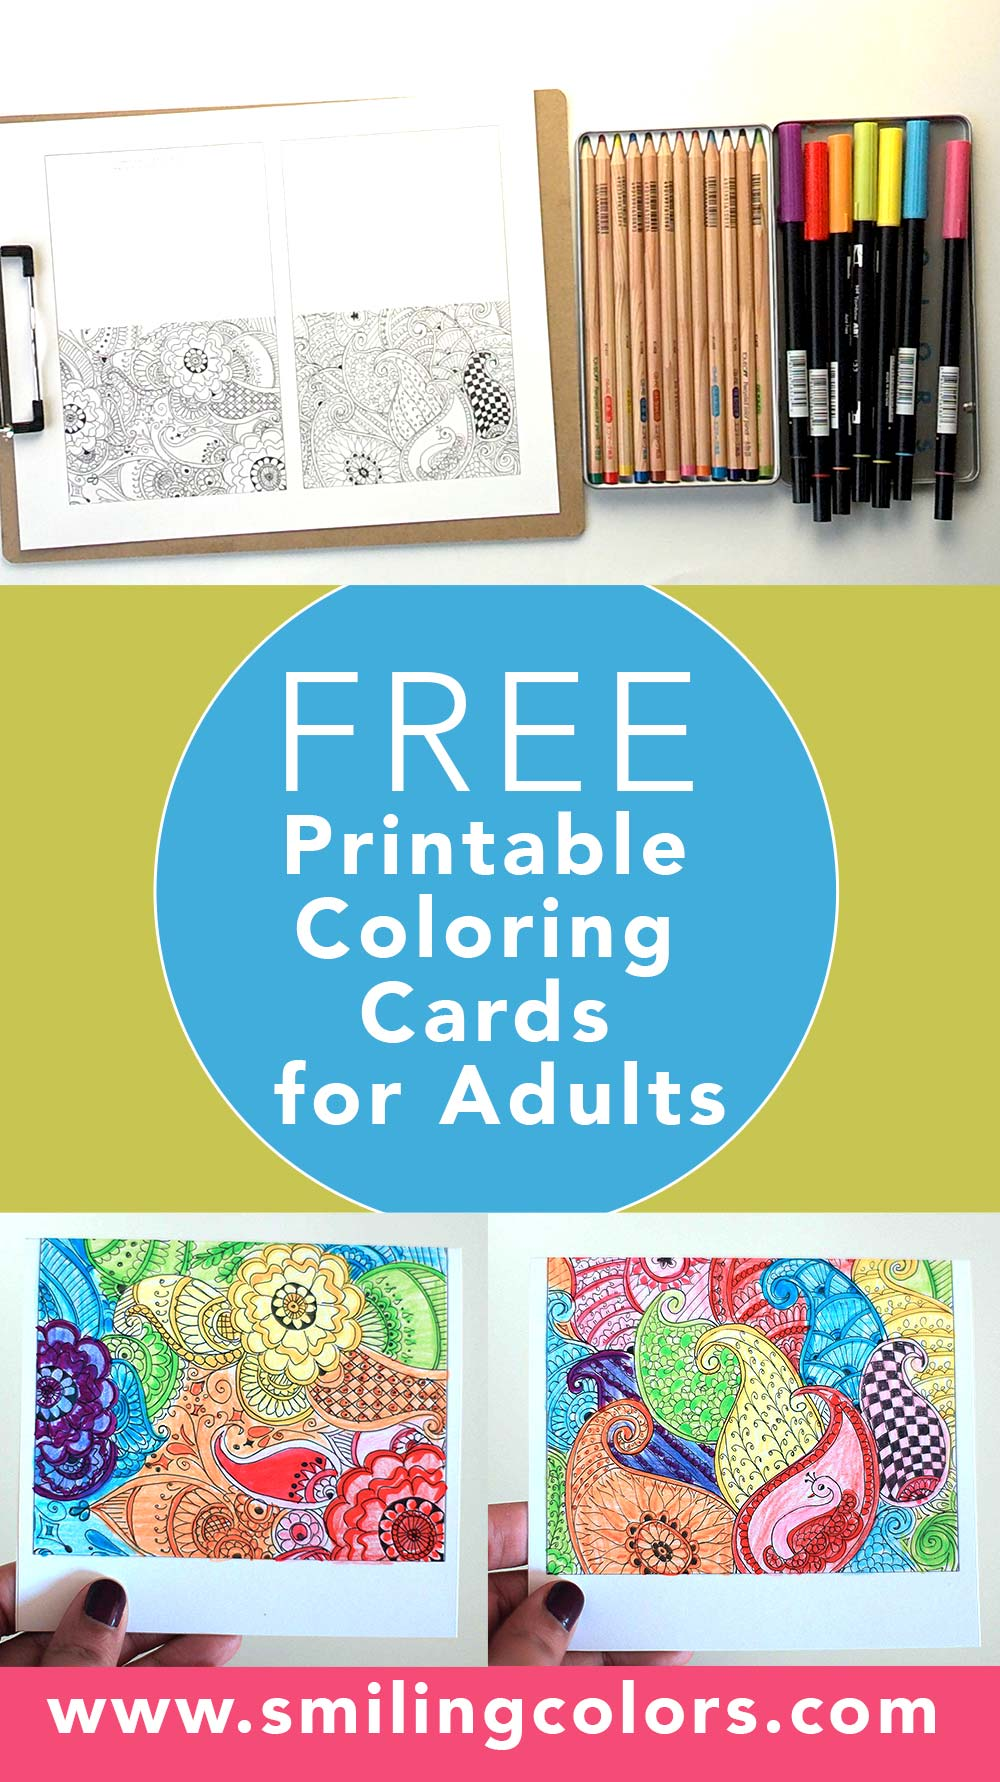 Free Printable Coloring Cards For Adults That You Can Print At Home And Relax While Perfect Any Occasion As The Inside Of Card Is Blank